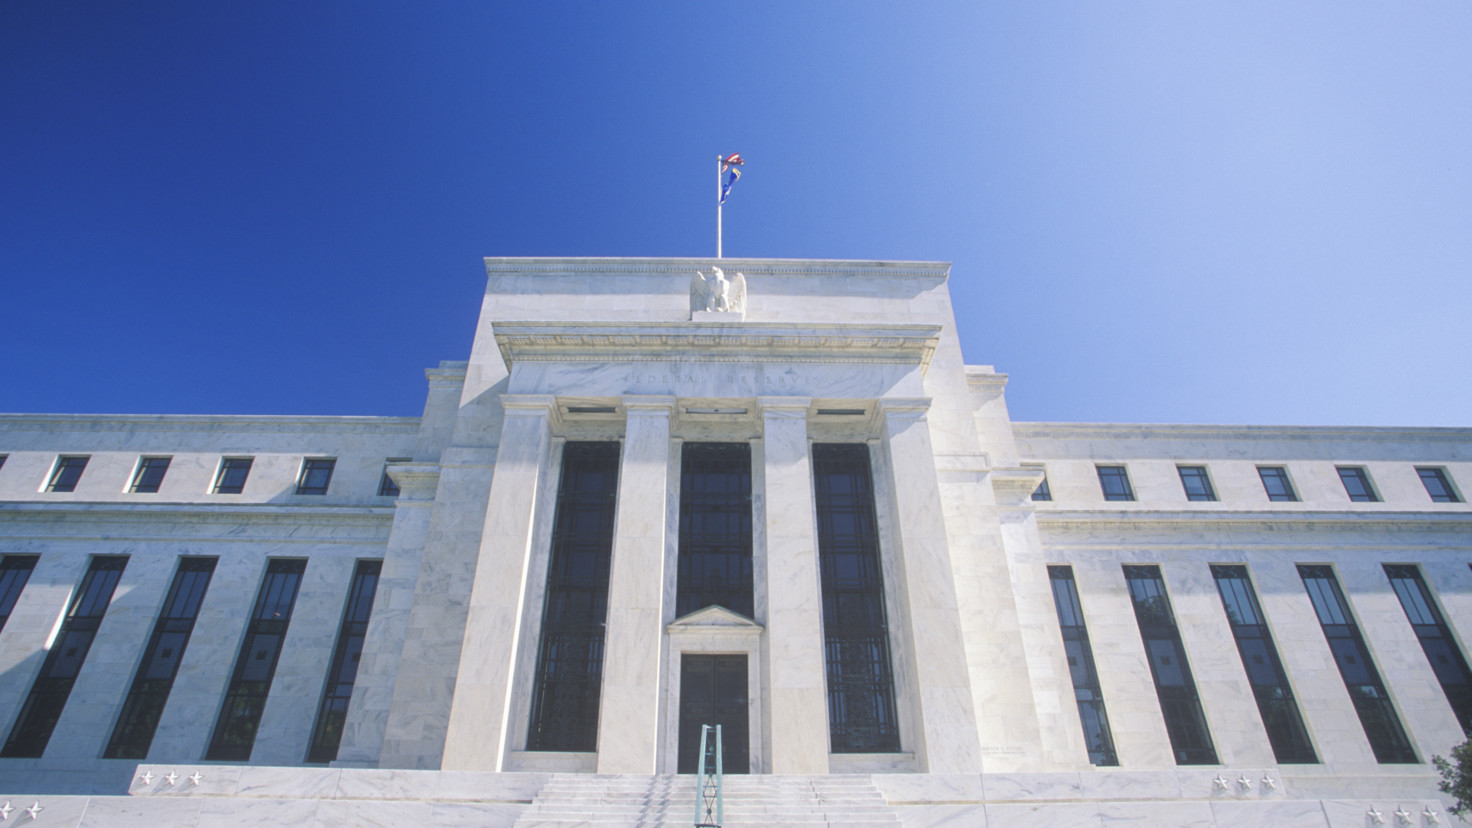 US markets open up following Feds $1.5tn capital injection